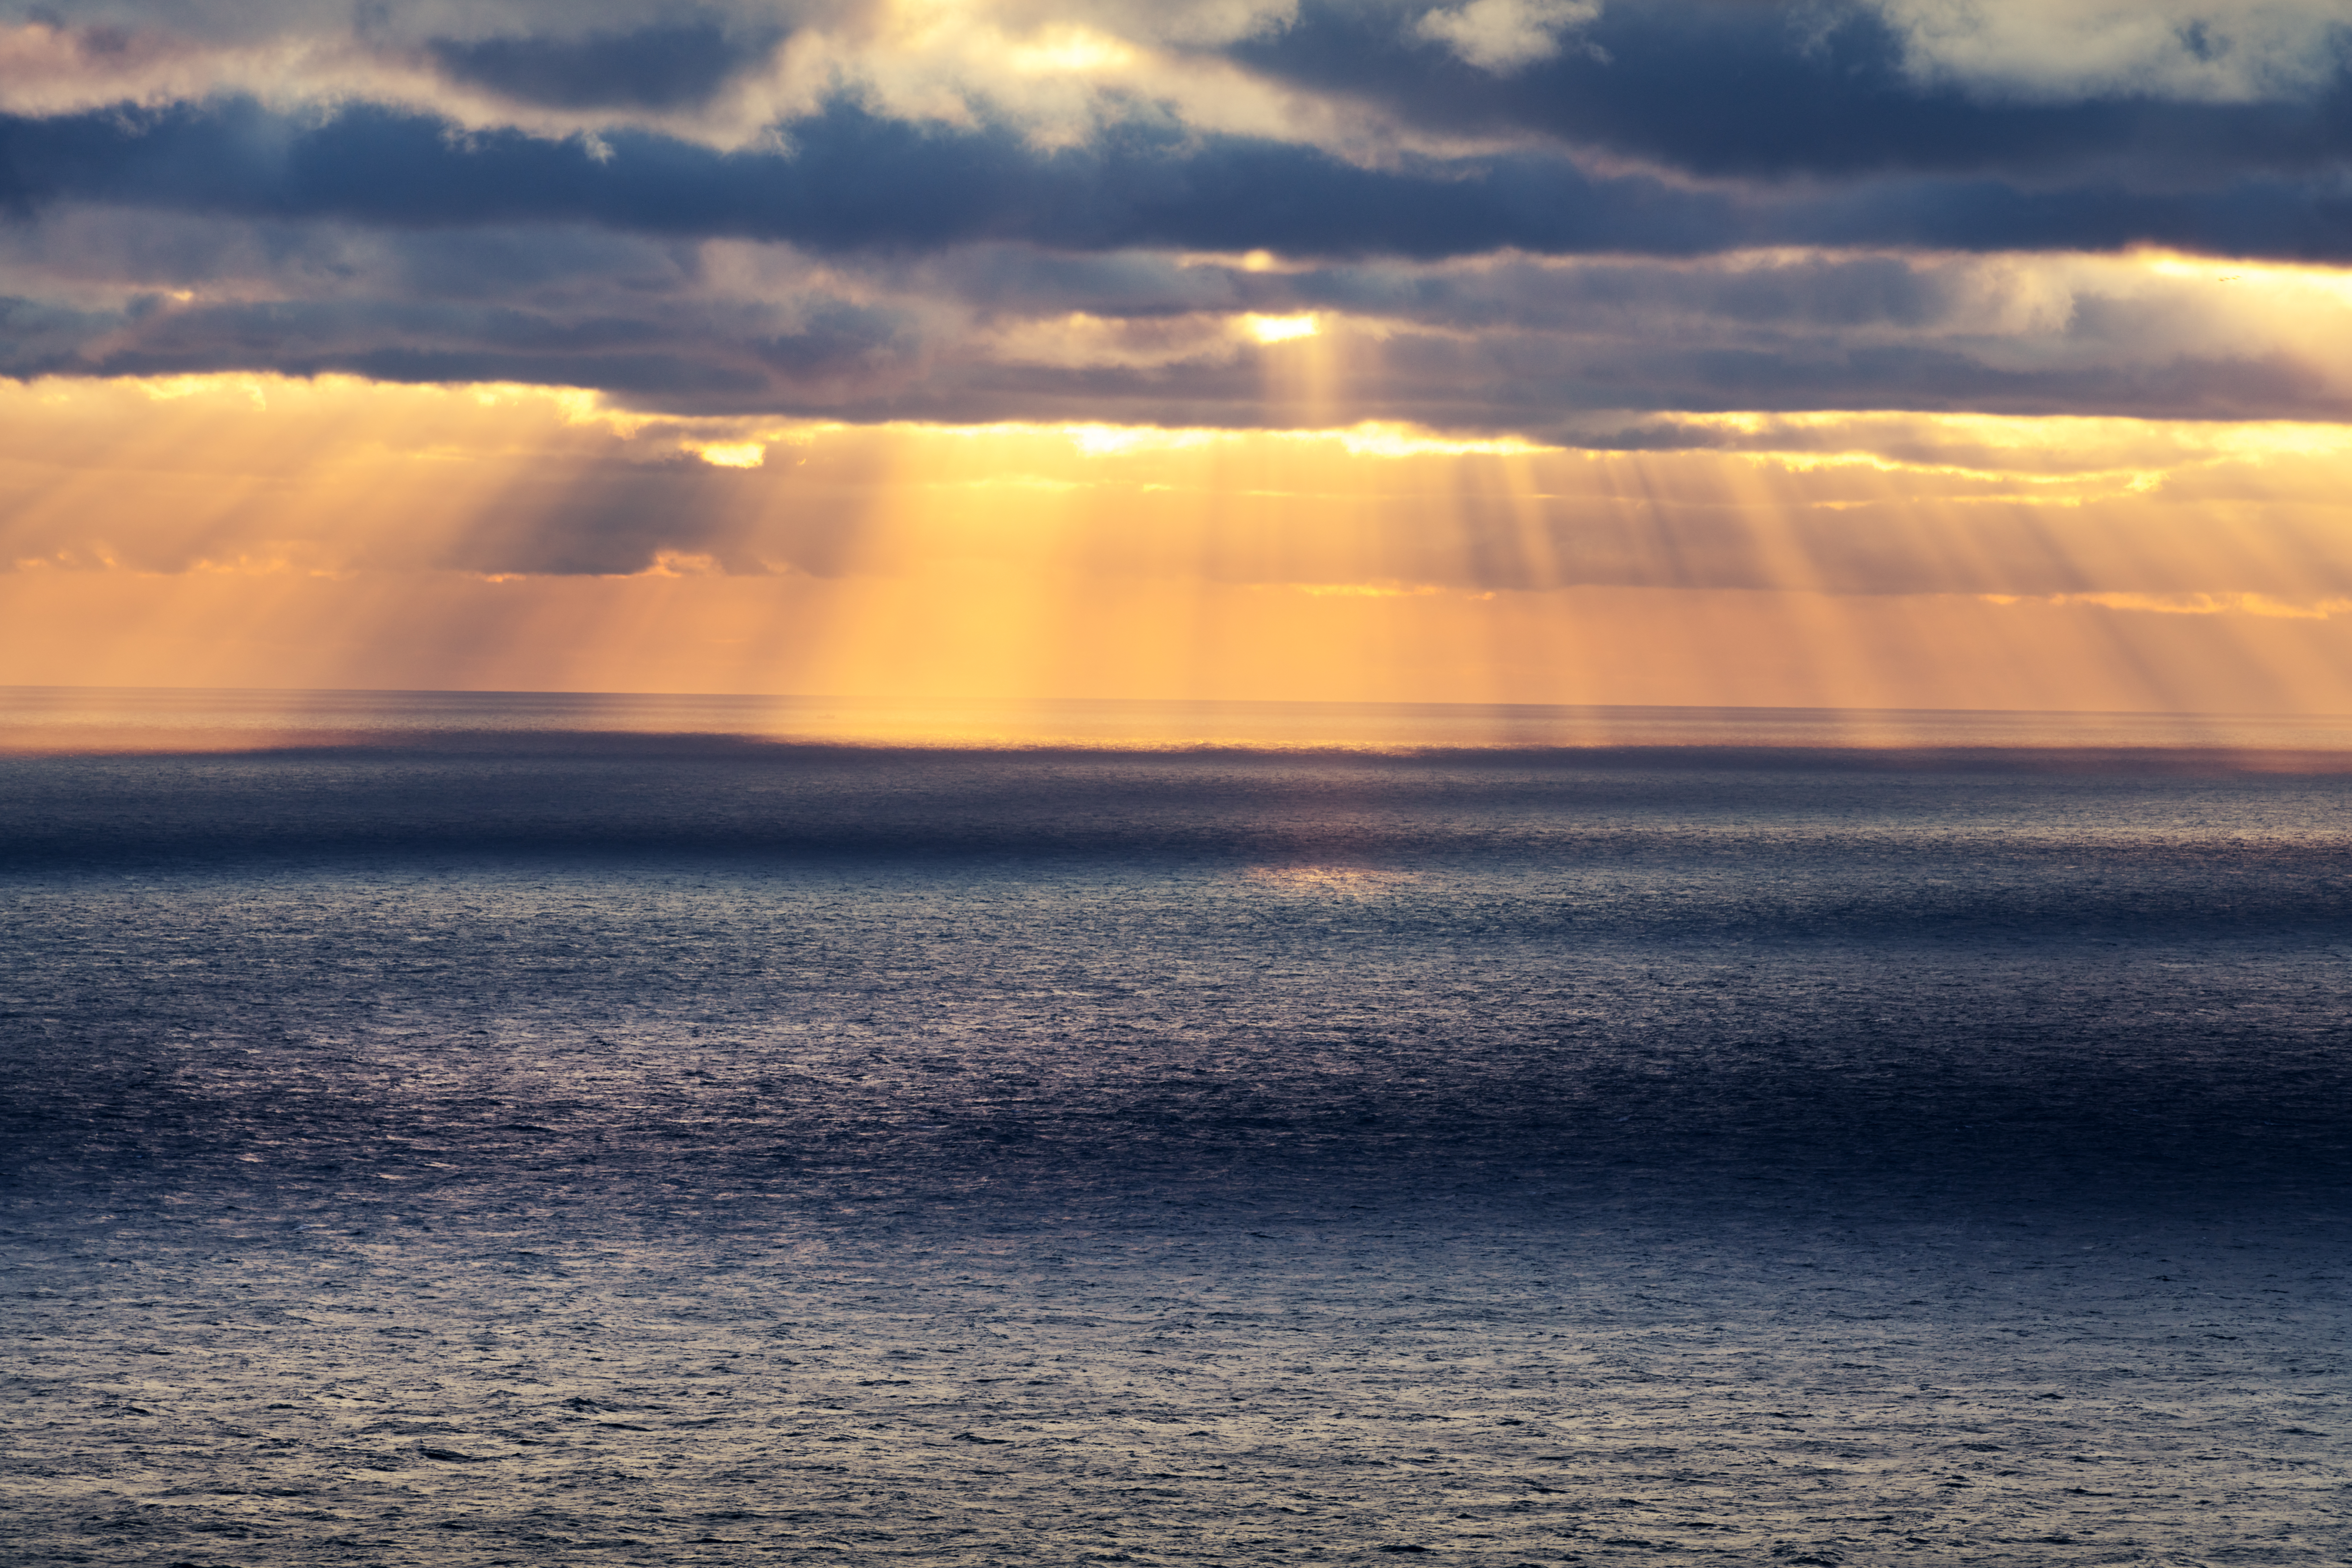 sunset in the ocean with glowing sun rays BBZ68CJ - The Science Behind Blue Light